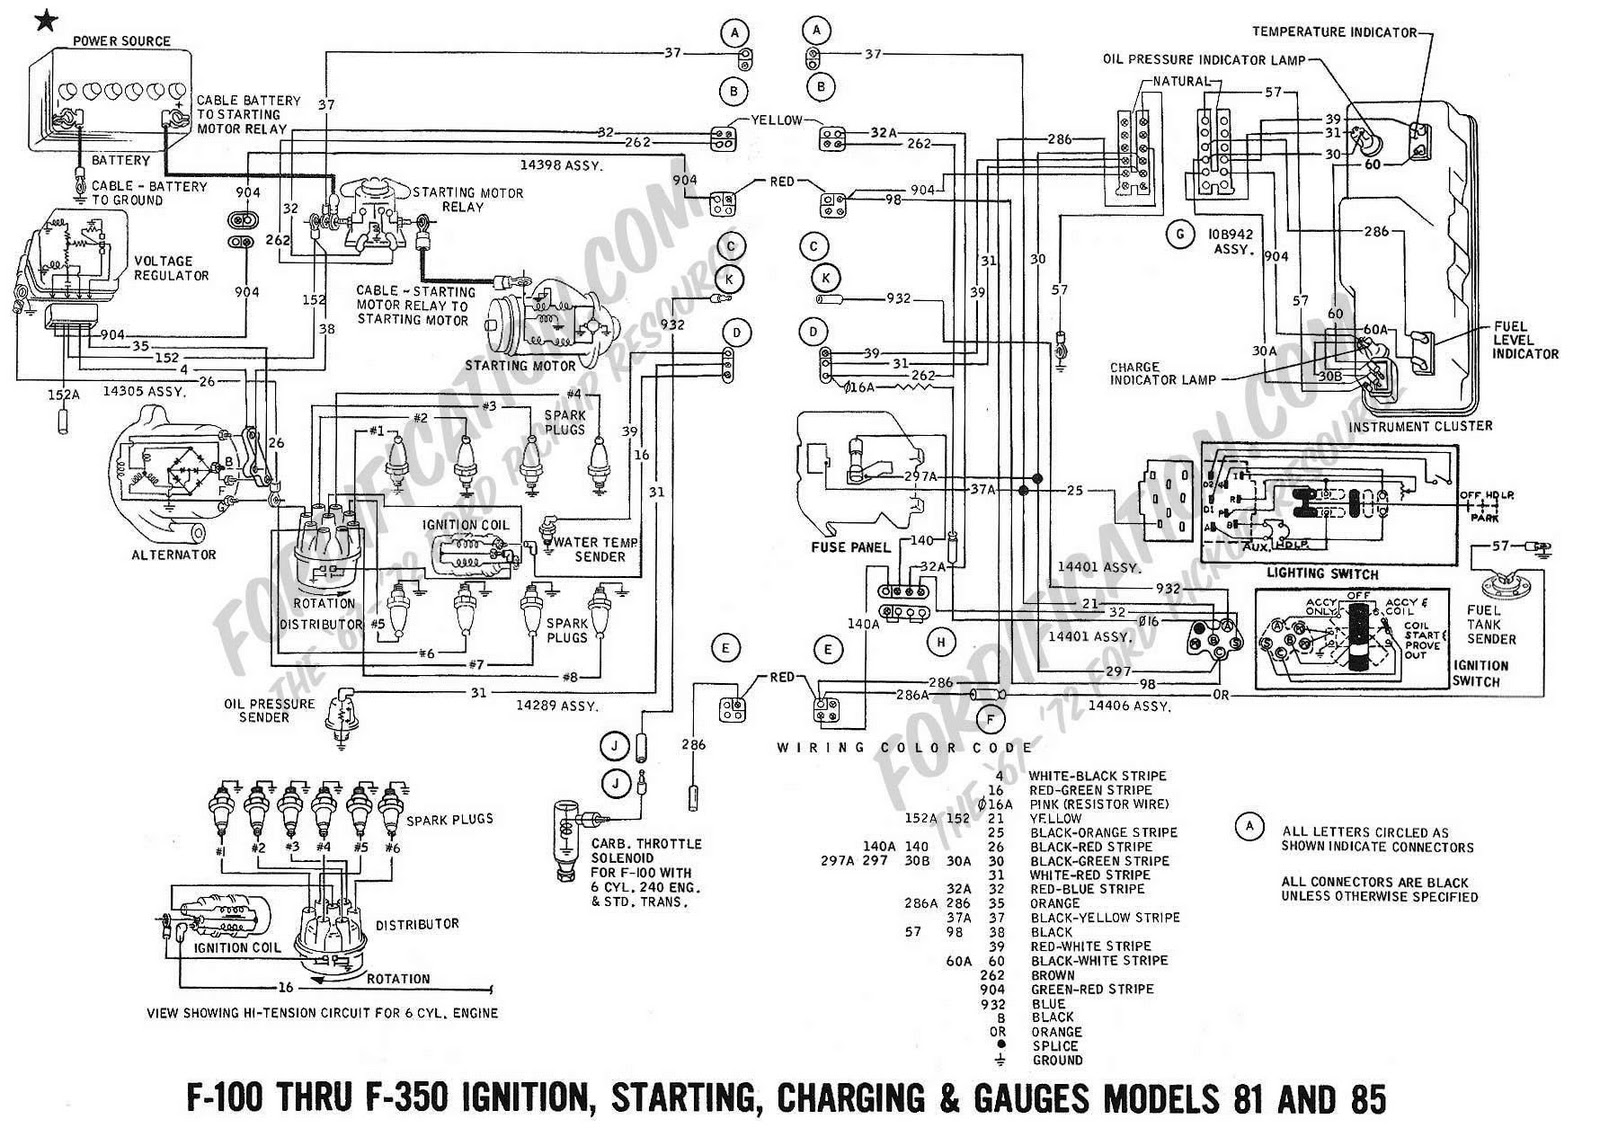 medium resolution of 1944 ford truck wiring harness wiring library diagram megaford truck wiring harness wiring diagrams update ford